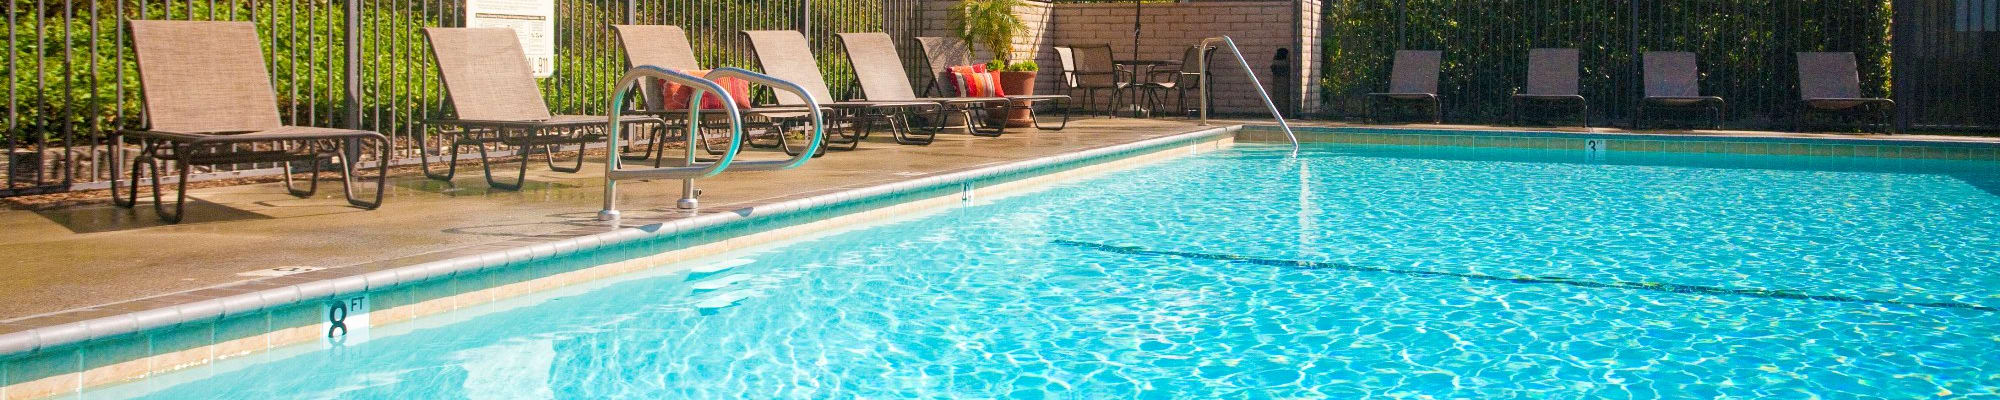 Sparkling Pools at Stoneridge Apartments, Upland, CA, 91786